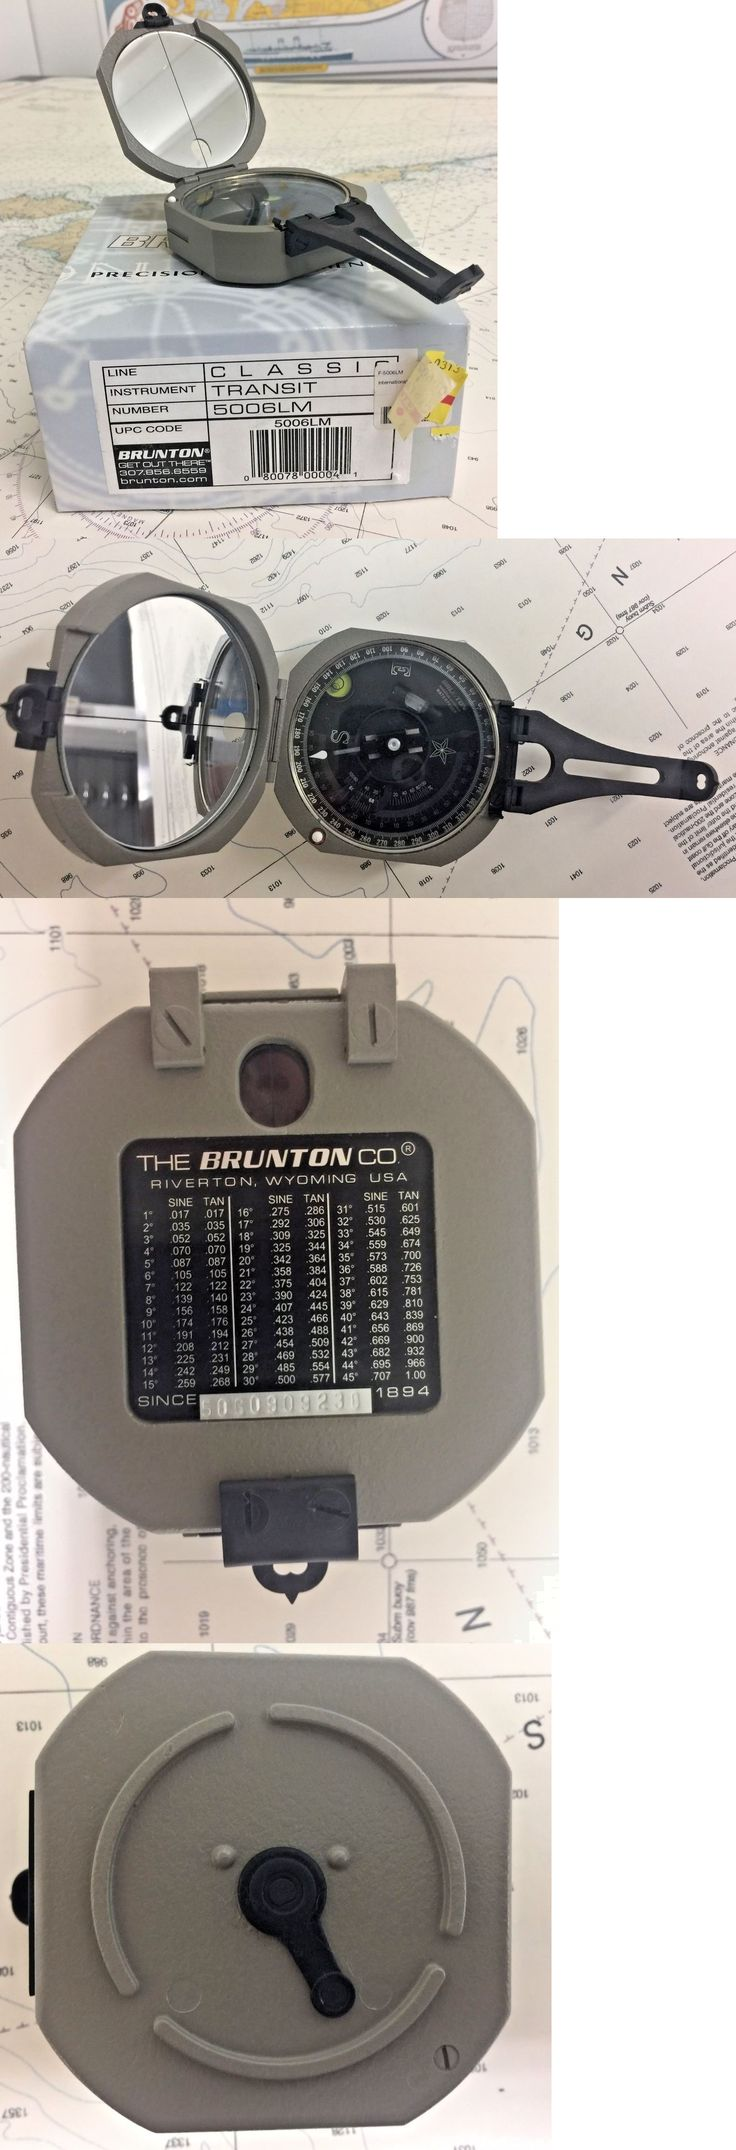 Compasses and GPS 52482: Brunton Pocket Transit International Compass With 0-360 Degree Scale -> BUY IT NOW ONLY: $349.95 on eBay!